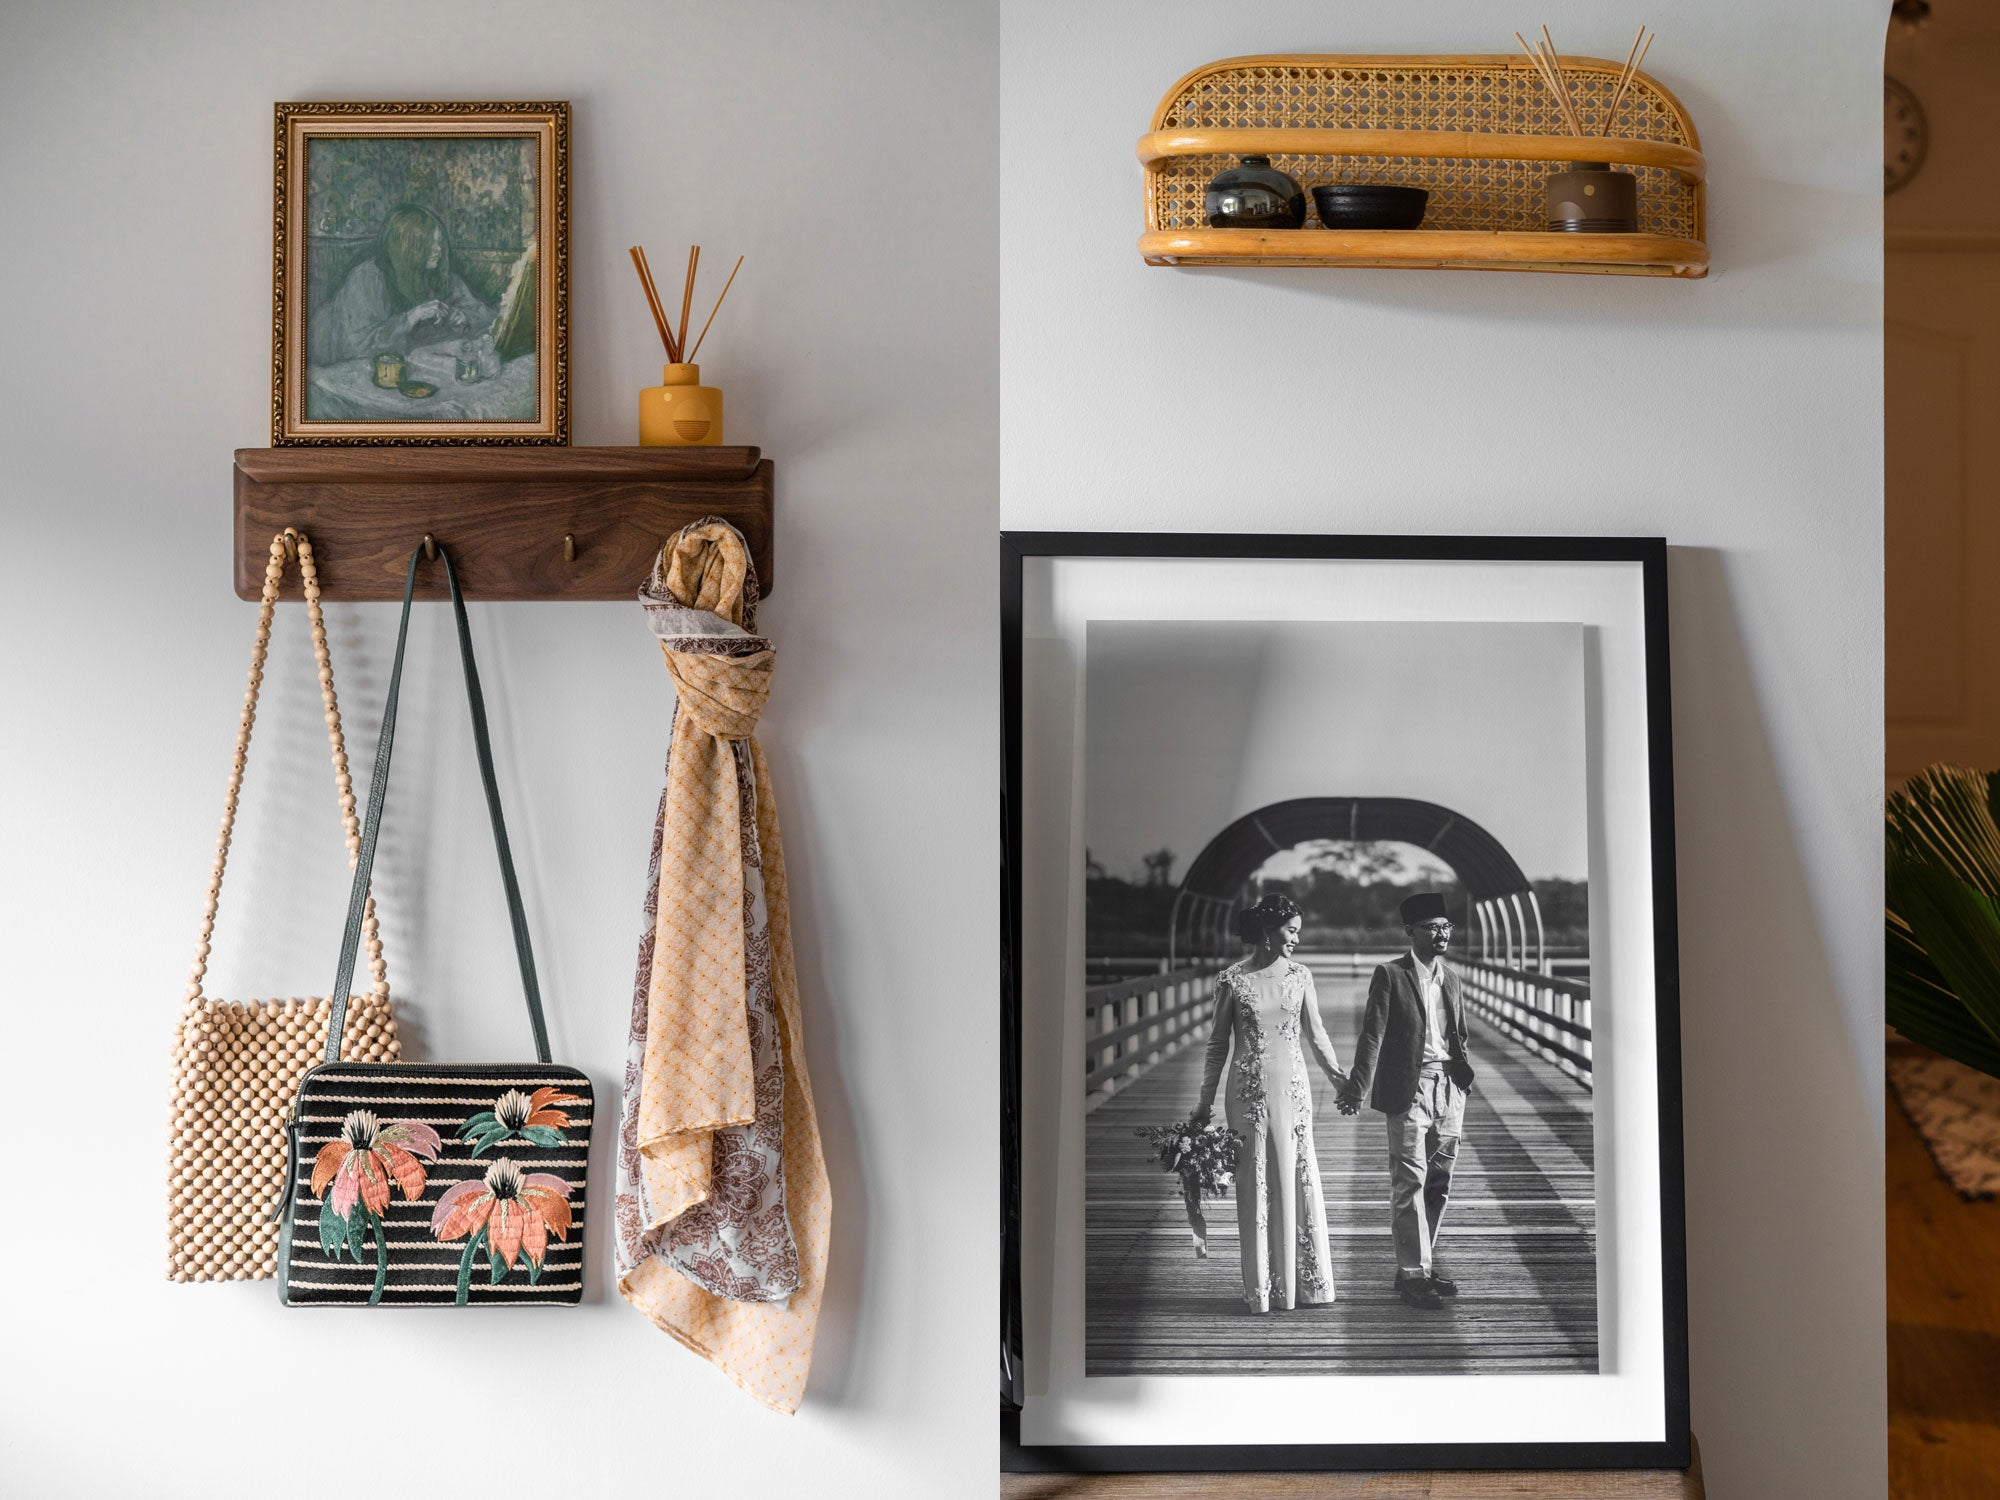 Vintage handbags and scarfs in mid-century modern home